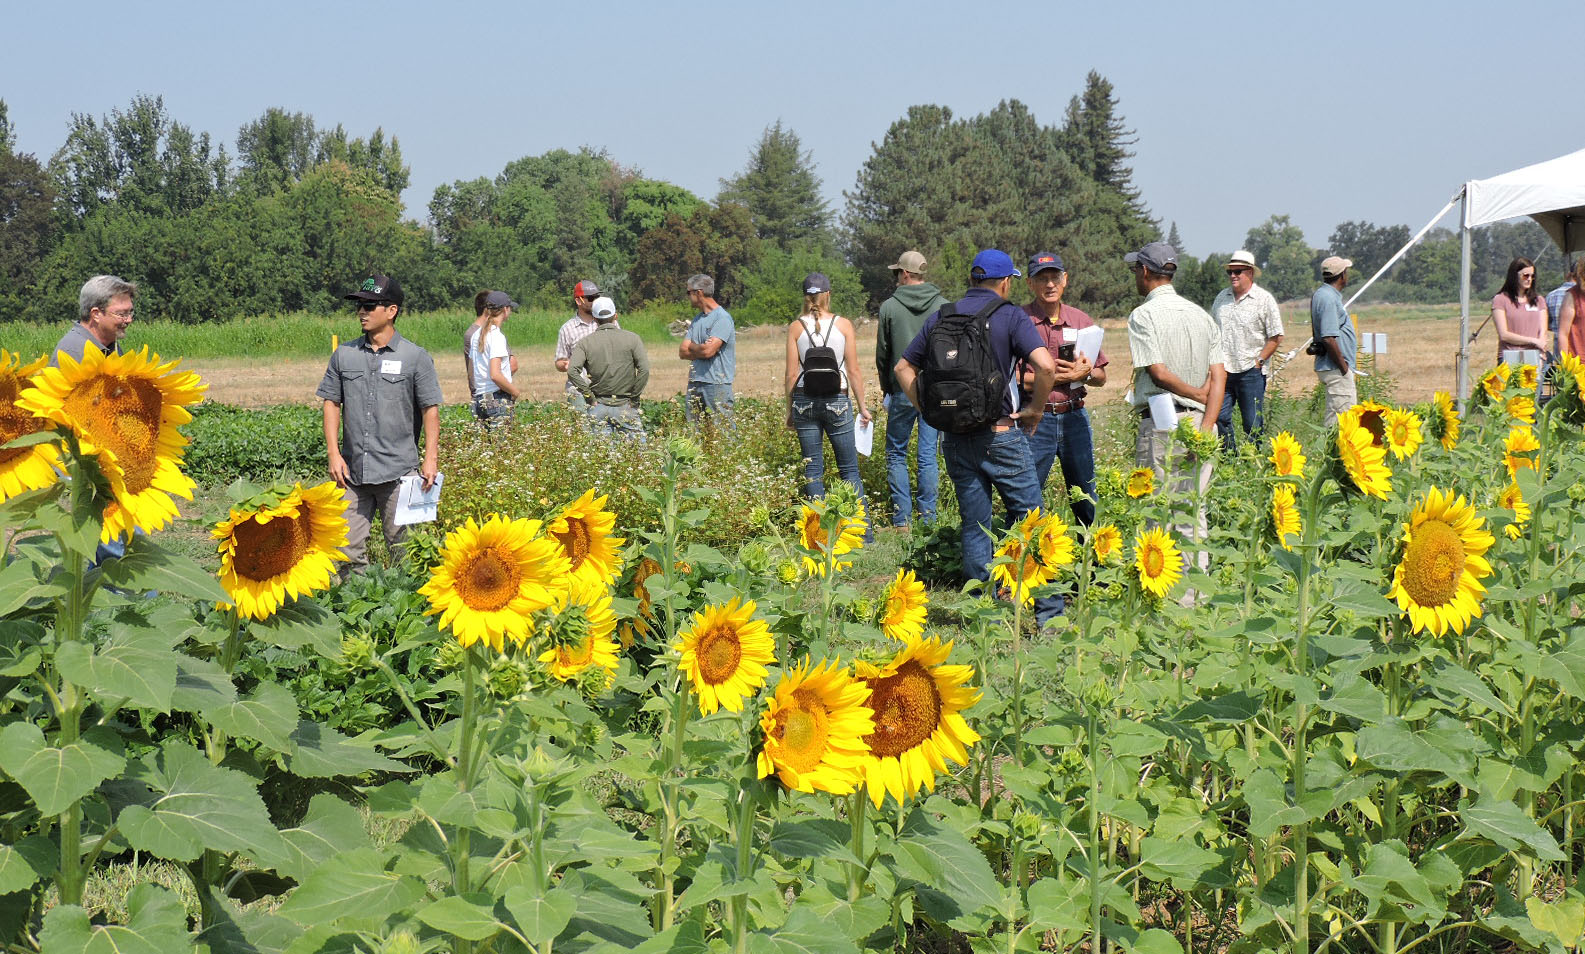 In the foreground is a plot of sunflowers with large blooms and yellow petals facing the camera, groups of producers and NRCS stand looking at the warm season cover crop plots under a clear blue sky.